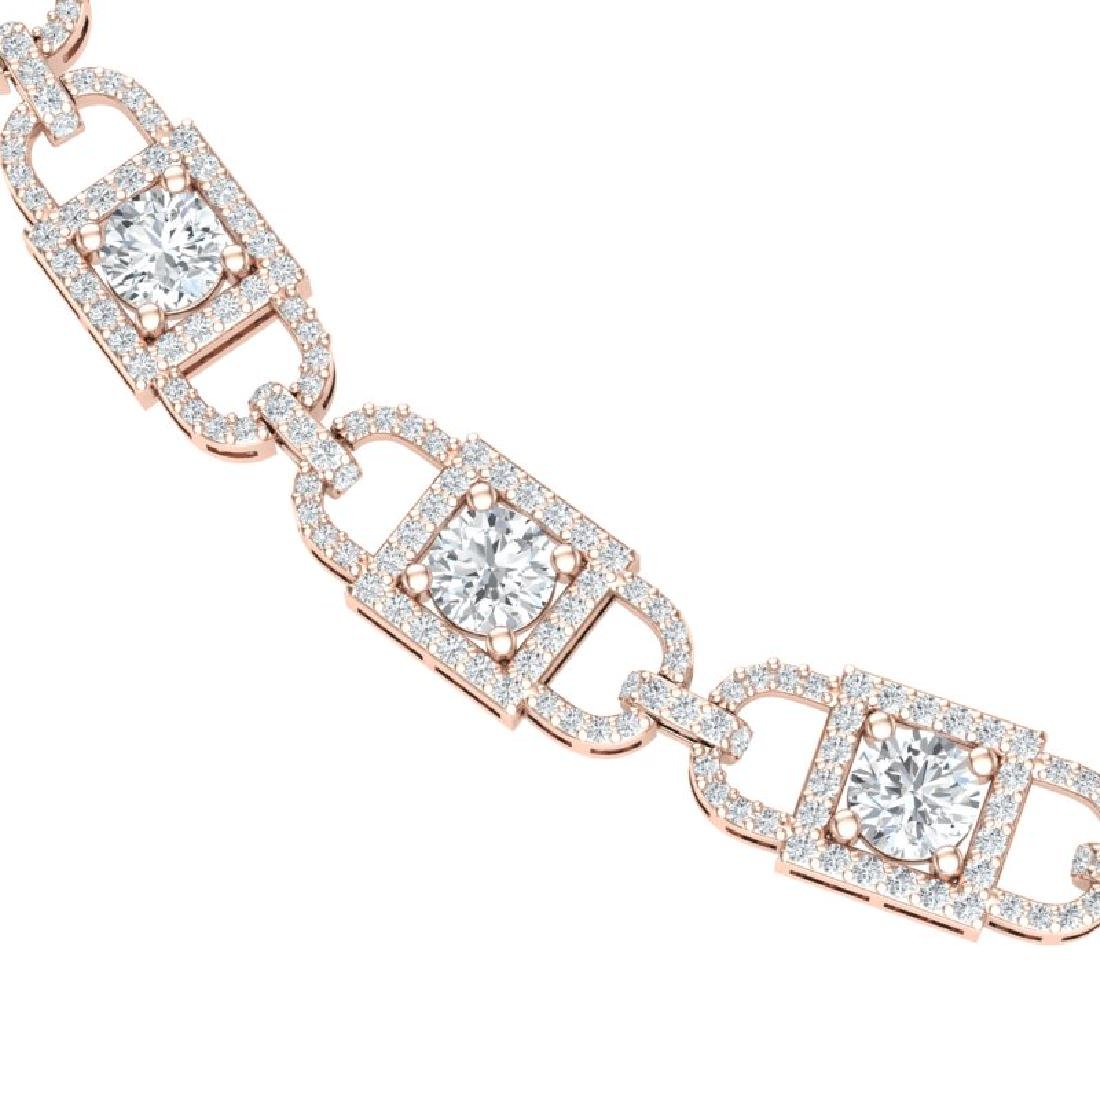 20 CTW Certified SI/I Diamond Halo Necklace 18K Rose - 2